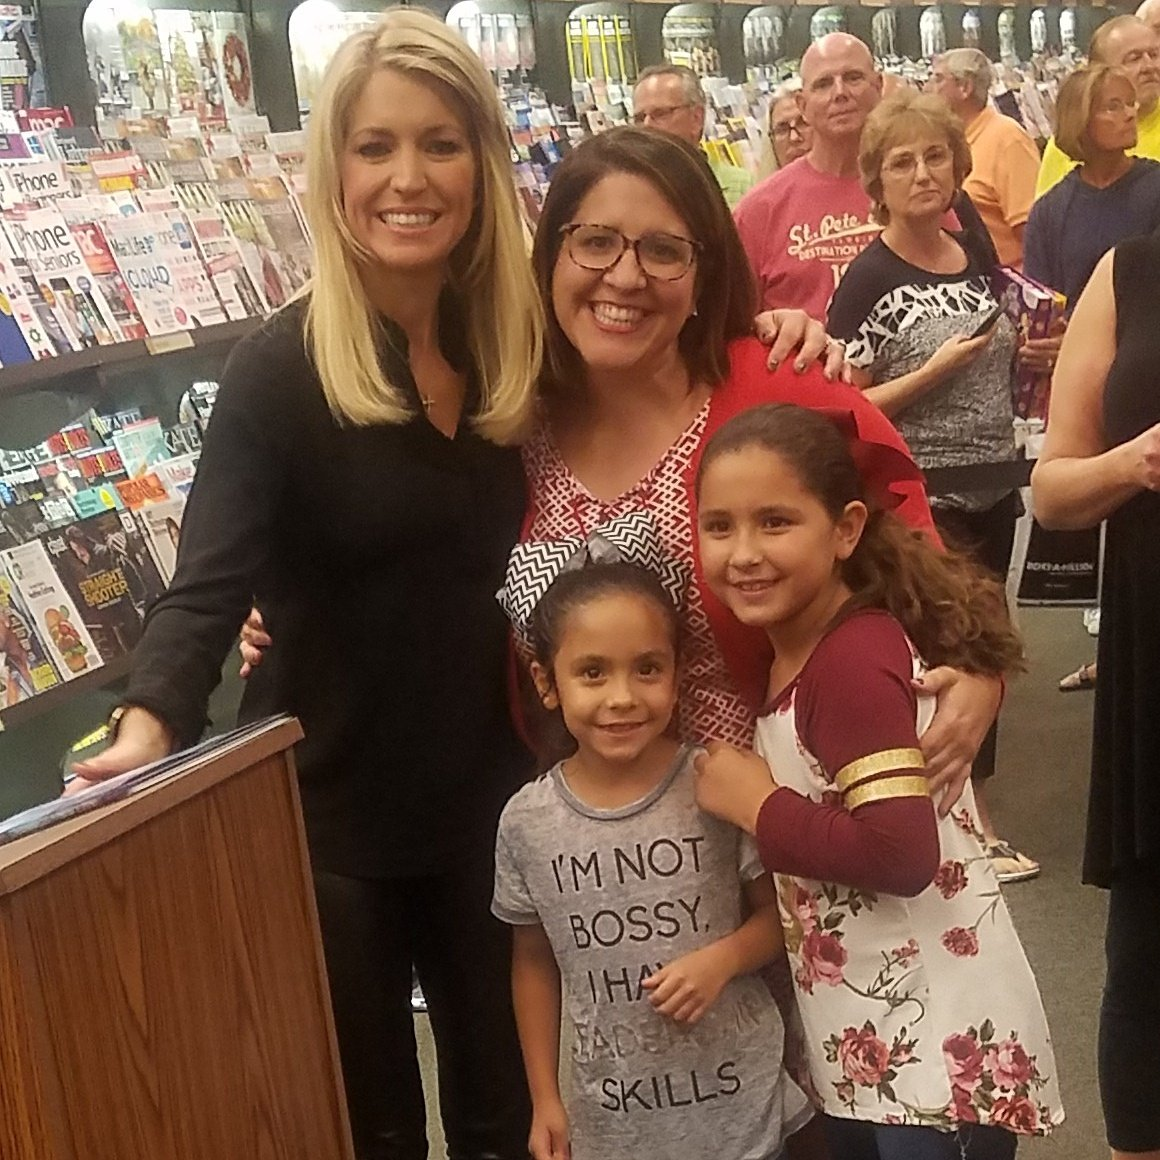 Just a girl from #SouthCarolina  @ainsleyearhardt such a pleasure for us to meet you tonight in #MyrtleBeach!<br>http://pic.twitter.com/7XCRO6e8Ft